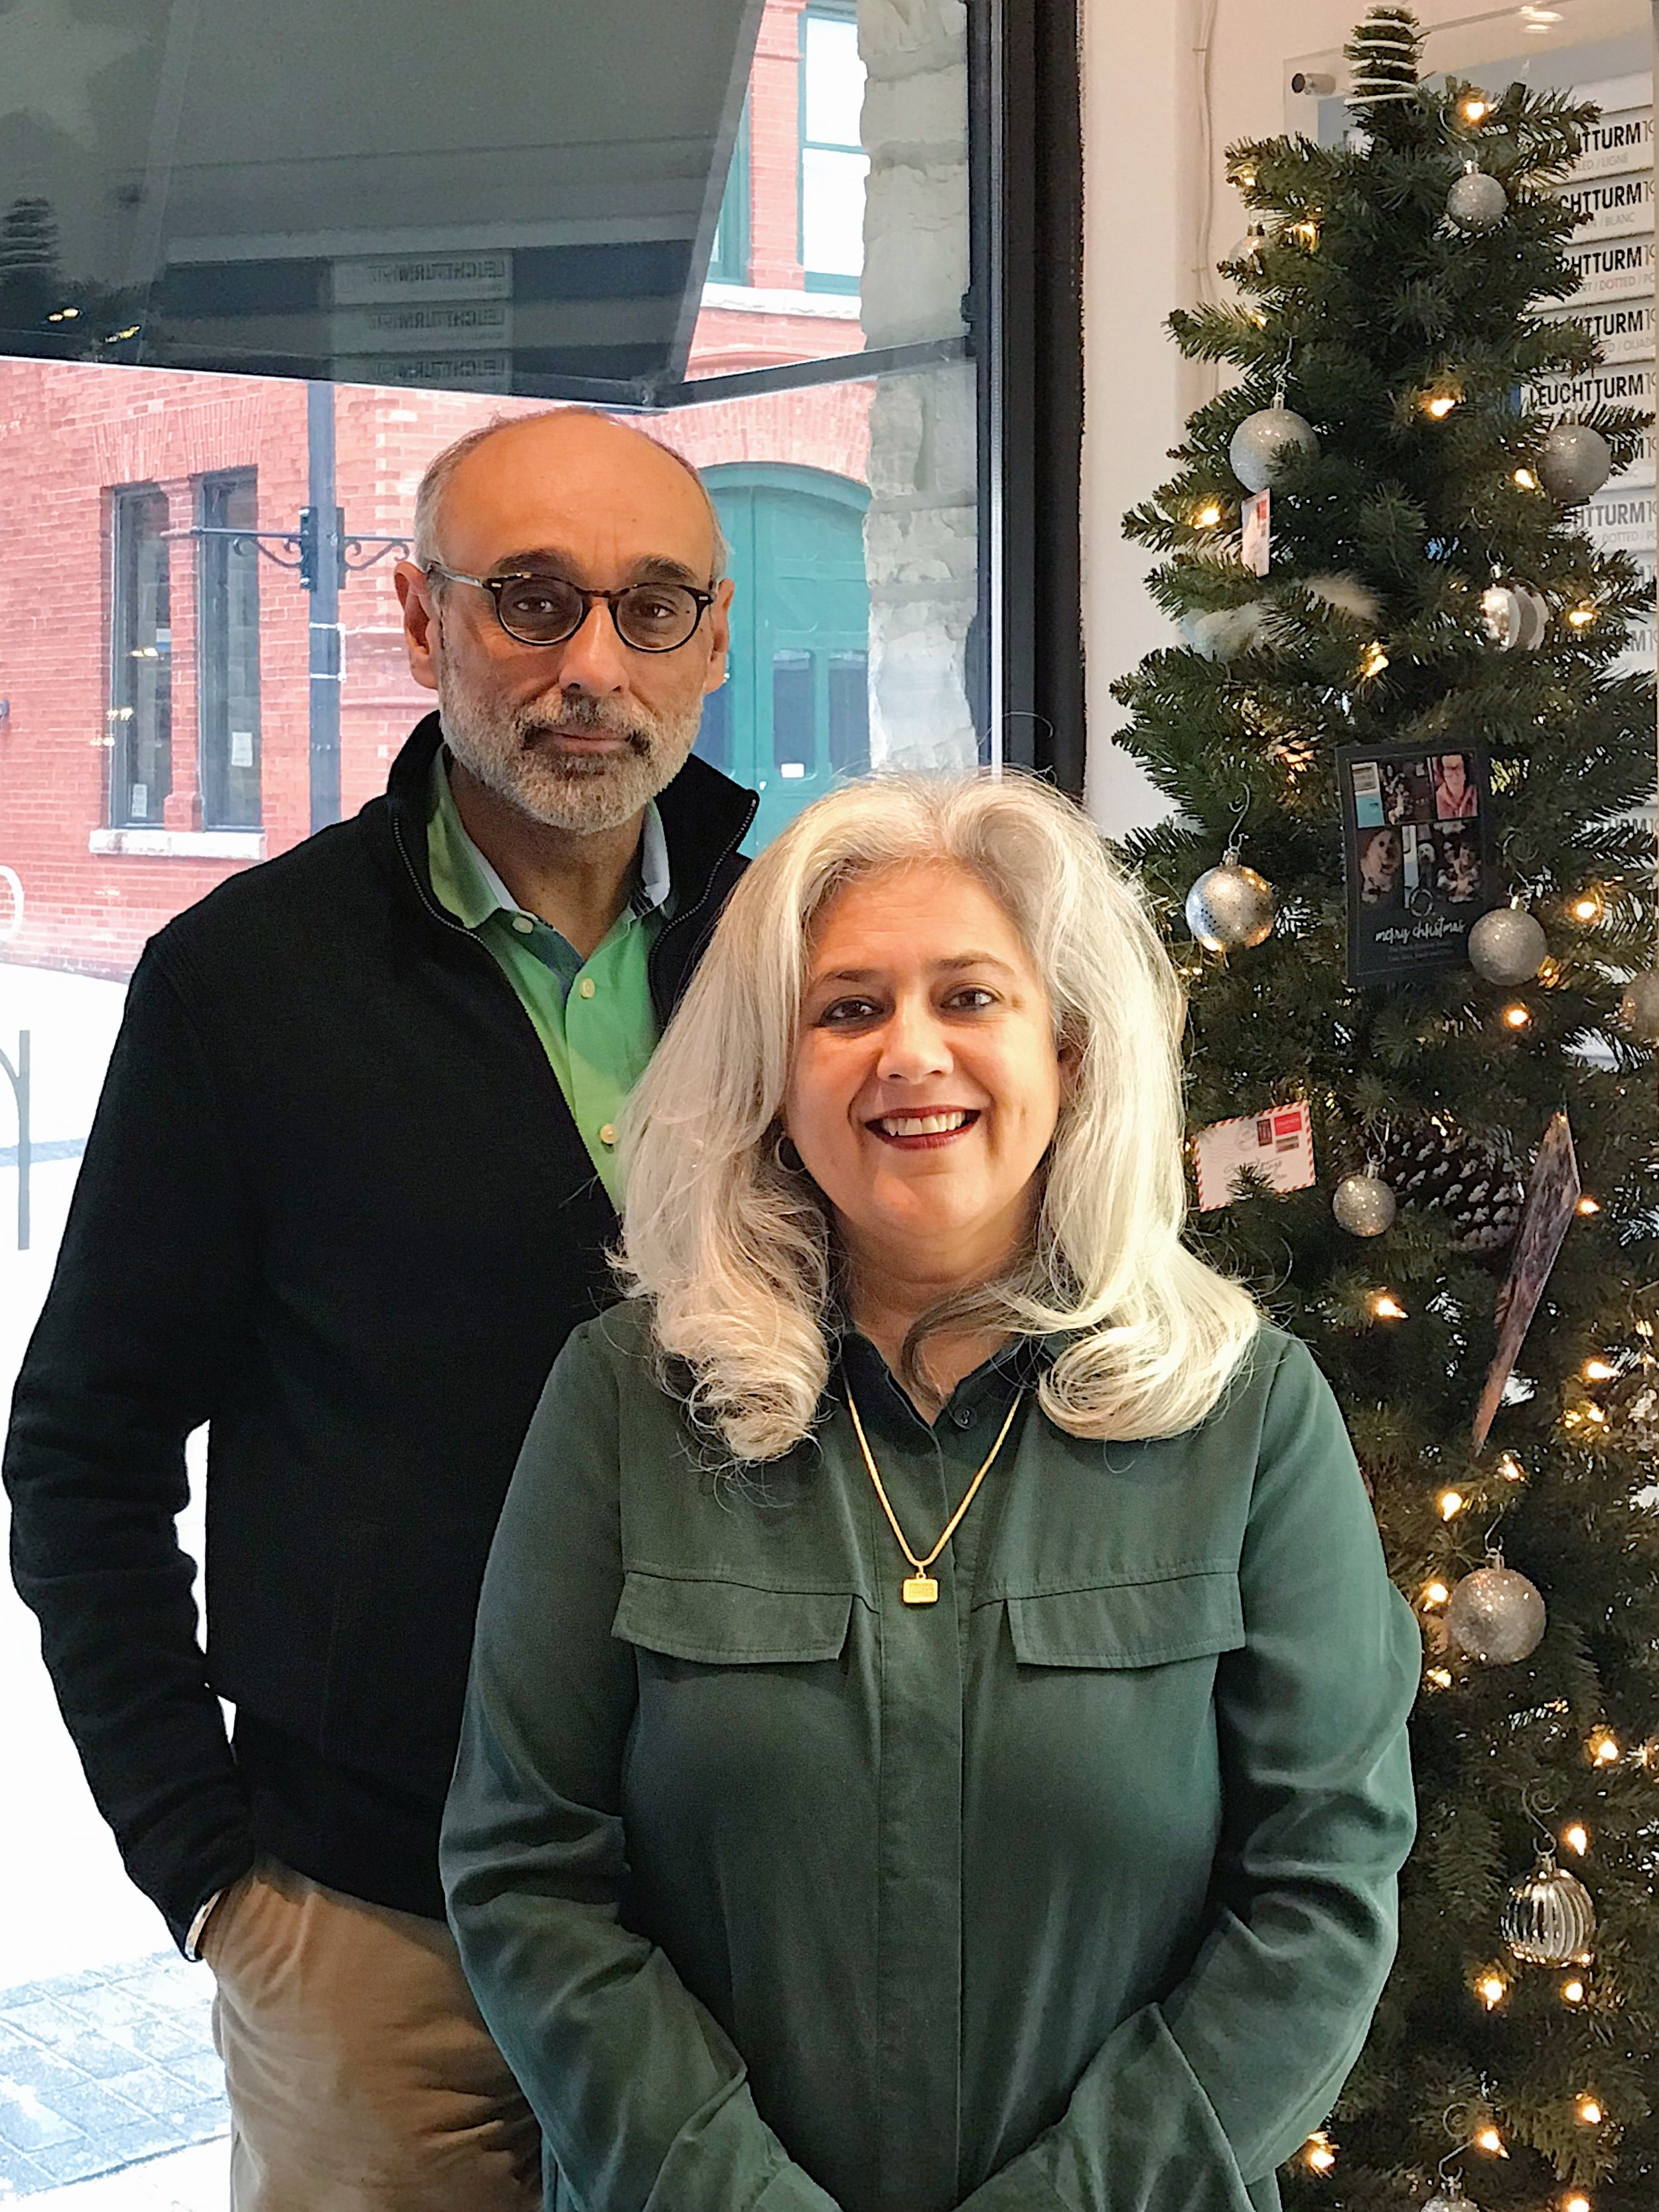 Happy greetings from Baldeep and I: We wish you all a safe and wonderful holidays season!